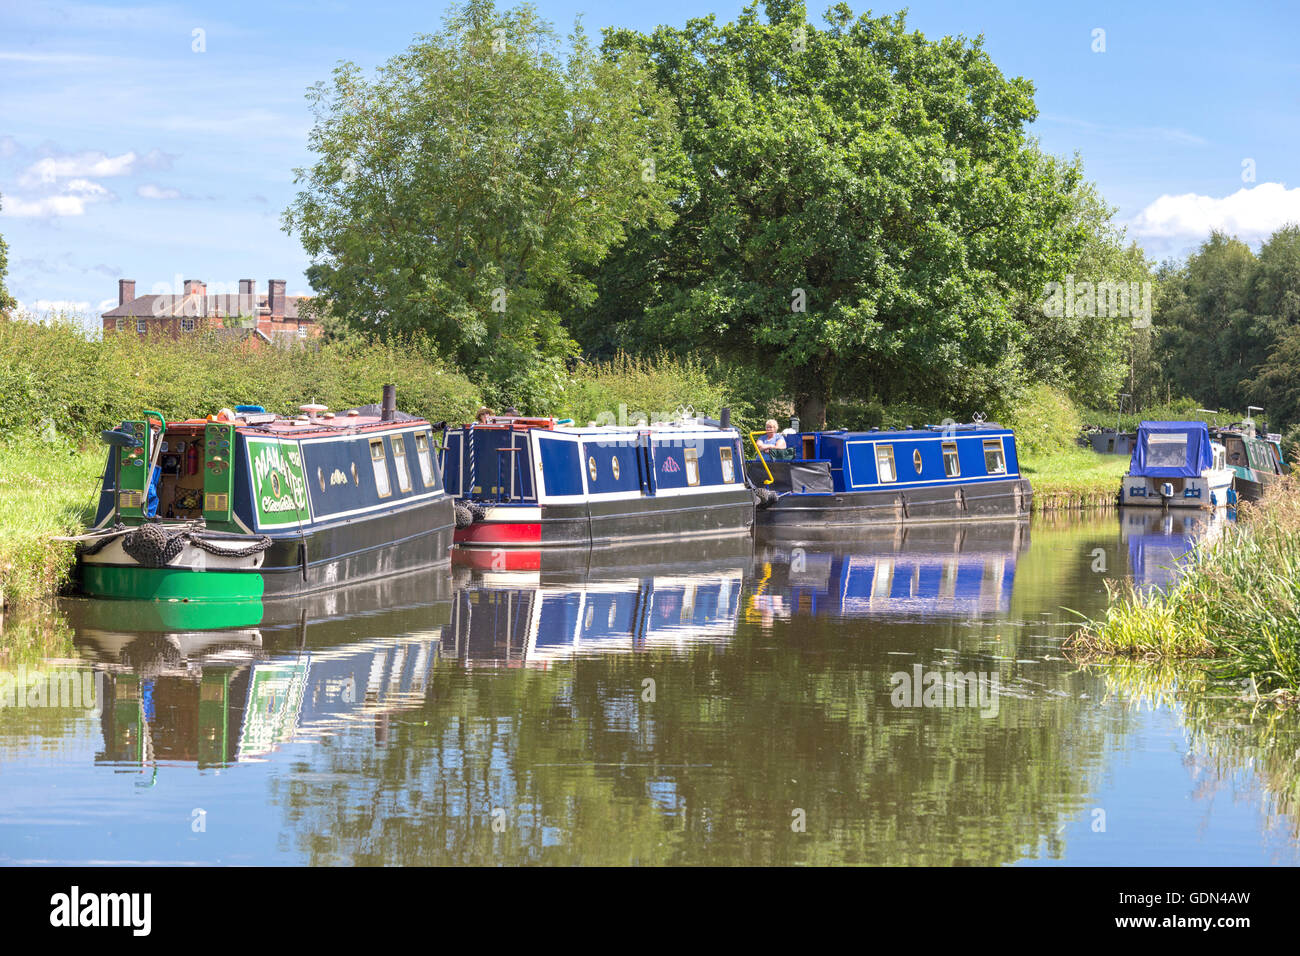 The Trent and Mersey Canal near Wychnor, Stafordshire, England, UK - Stock Image